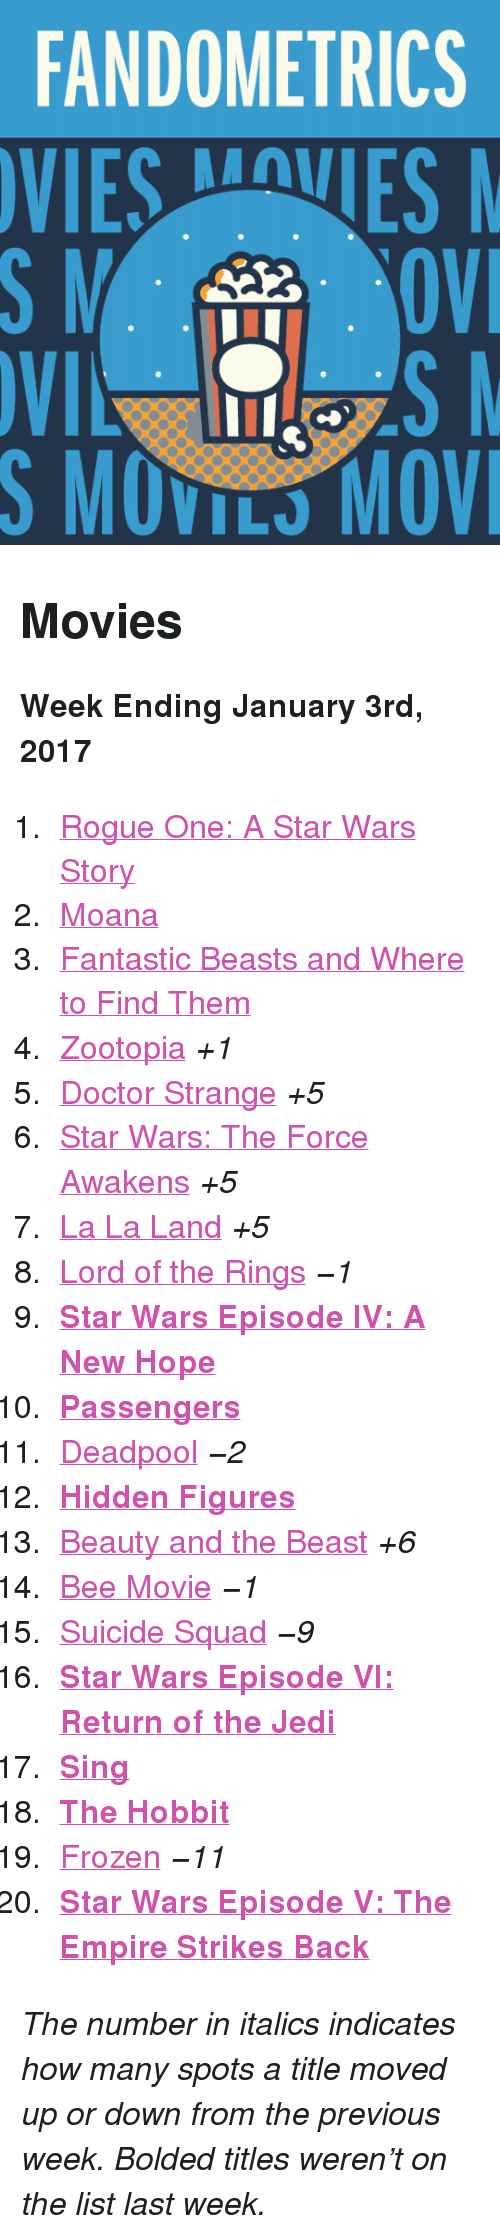 "Bee Movie, Doctor, and Empire: FANDOMETRICS  VIESVES  S MOVILS MOV <h2>Movies</h2><p><b>Week Ending January 3rd, 2017</b></p><ol><li><a href=""http://www.tumblr.com/search/rogue%20one"">Rogue One: A Star Wars Story</a></li>  <li><a href=""http://www.tumblr.com/search/moana"">Moana</a></li>  <li><a href=""http://www.tumblr.com/search/fantastic%20beasts%20and%20where%20to%20find%20them"">Fantastic Beasts and Where to Find Them</a></li>  <li><a href=""http://www.tumblr.com/search/zootopia"">Zootopia</a> <i>+1</i></li>  <li><a href=""http://www.tumblr.com/search/doctor%20strange"">Doctor Strange</a> <i>+5</i></li>  <li><a href=""http://www.tumblr.com/search/the%20force%20awakens"">Star Wars: The Force Awakens</a> <i>+5</i></li>  <li><a href=""http://www.tumblr.com/search/la%20la%20land"">La La Land</a> <i>+5</i></li>  <li><a href=""http://www.tumblr.com/search/lotr"">Lord of the Rings</a> <i>−1</i></li>  <li><a href=""http://www.tumblr.com/search/a%20new%20hope""><b>Star Wars Episode IV: A New Hope</b></a></li>  <li><a href=""http://www.tumblr.com/search/passengers""><b>Passengers</b></a></li>  <li><a href=""http://www.tumblr.com/search/deadpool"">Deadpool</a> <i>−2</i></li>  <li><a href=""http://www.tumblr.com/search/hidden%20figures""><b>Hidden Figures</b></a></li>  <li><a href=""http://www.tumblr.com/search/beauty%20and%20the%20beast"">Beauty and the Beast</a> <i>+6</i></li>  <li><a href=""http://www.tumblr.com/search/bee%20movie"">Bee Movie</a> <i>−1</i></li>  <li><a href=""http://www.tumblr.com/search/suicide%20squad"">Suicide Squad</a> <i>−9</i></li>  <li><a href=""http://www.tumblr.com/search/return%20of%20the%20jedi""><b>Star Wars Episode VI: Return of the Jedi</b></a></li>  <li><a href=""http://www.tumblr.com/search/sing%20movie""><b>Sing</b></a></li>  <li><a href=""http://www.tumblr.com/search/the%20hobbit""><b>The Hobbit</b></a></li>  <li><a href=""http://www.tumblr.com/search/frozen"">Frozen</a> <i>−11</i></li>  <li><a href=""http://www.tumblr.com/search/the%20empire%20strikes%20back""><b>Star Wars Episode V: The Empire Strikes Back</b></a></li></ol><p><i>The number in italics indicates how many spots a title moved up or down from the previous week. Bolded titles weren't on the list last week.</i></p>"